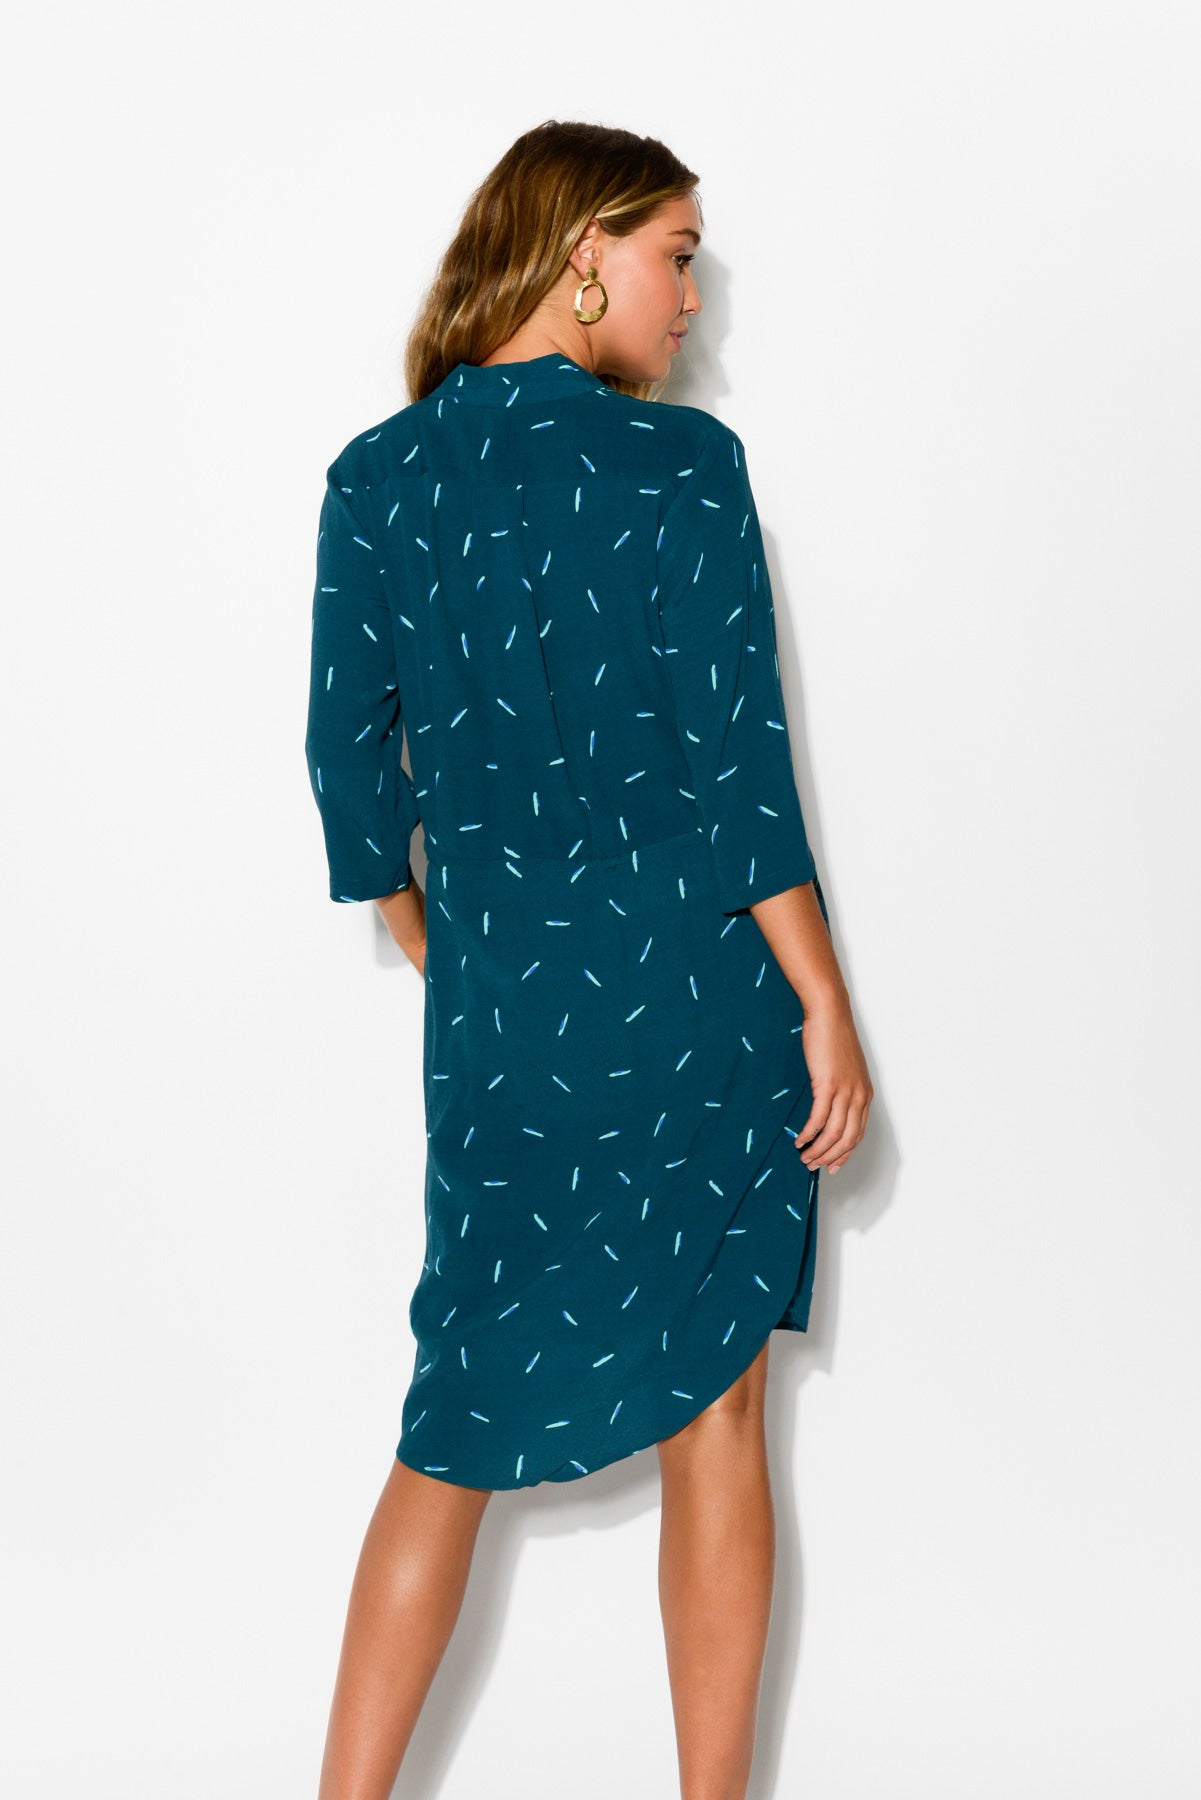 Sage Tie Green Dress - Blue Bungalow